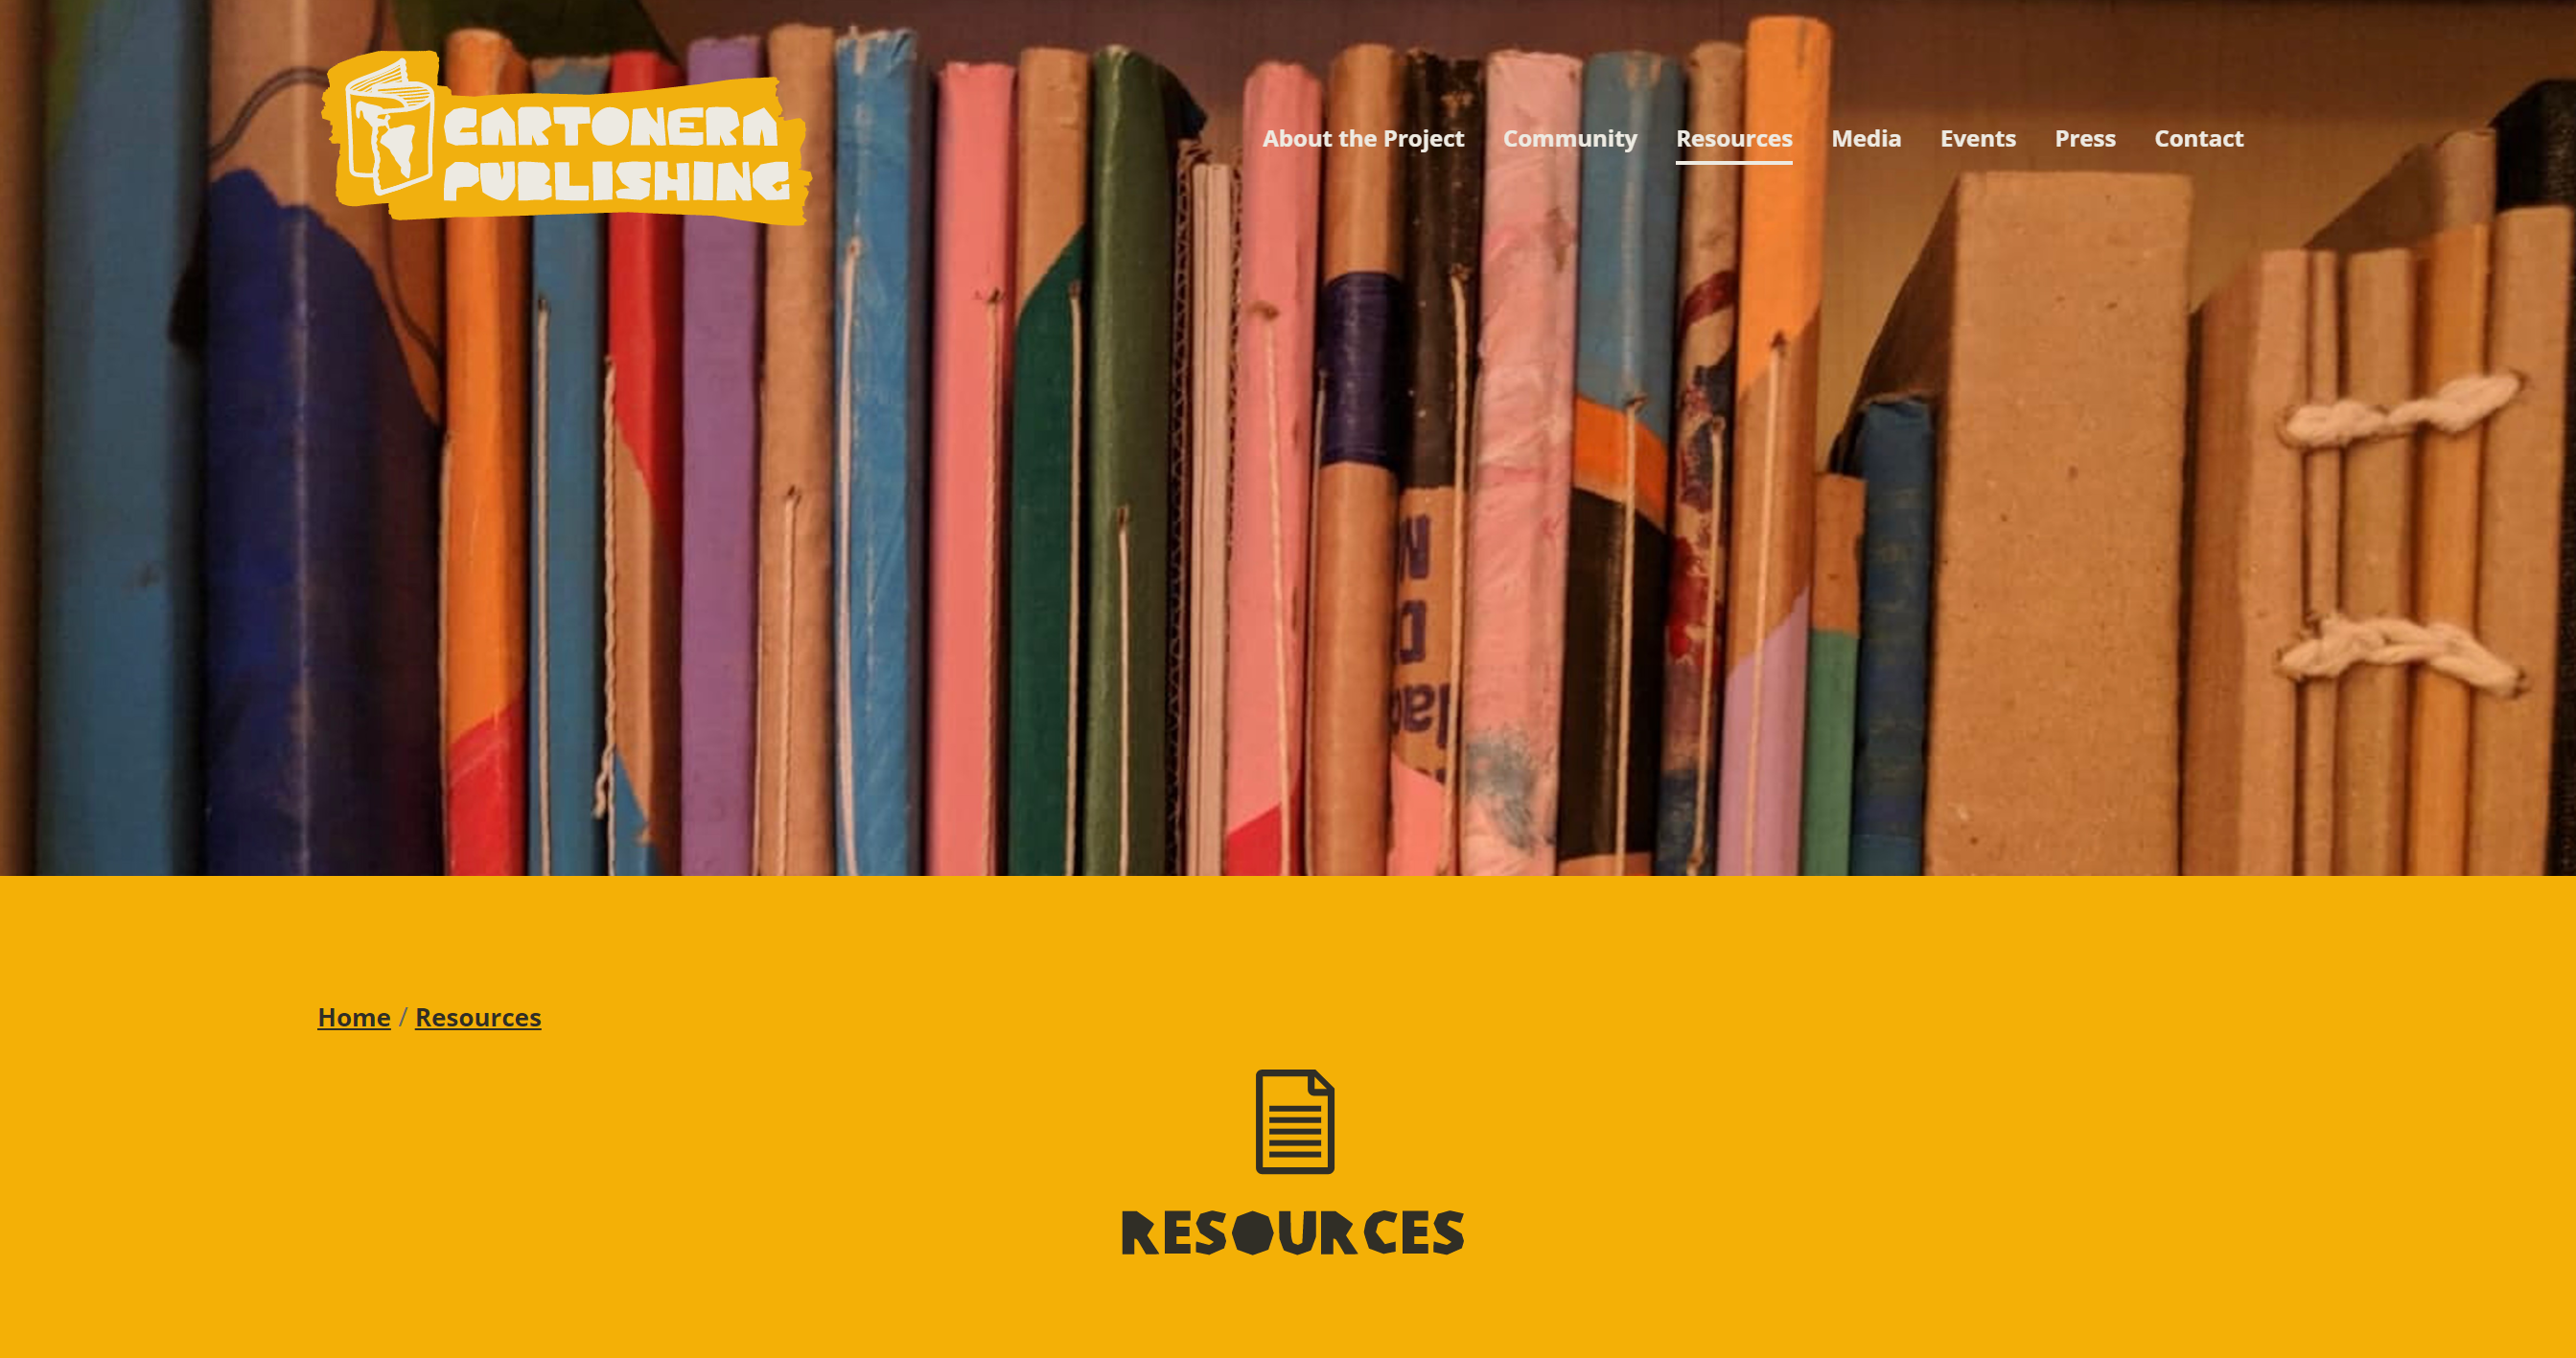 their resources webpage